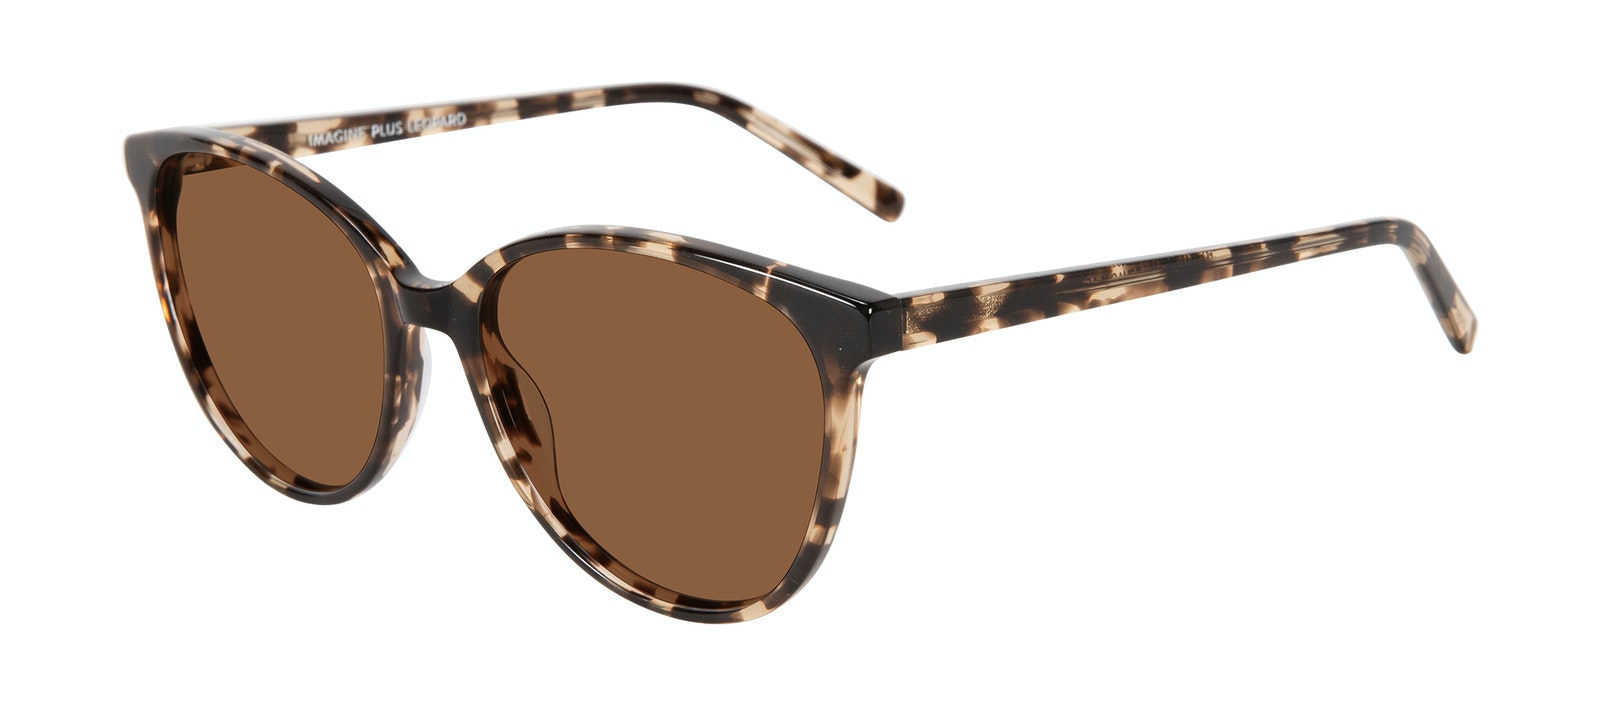 Affordable Fashion Glasses Cat Eye Sunglasses Women Imagine Plus Leopard Tilt